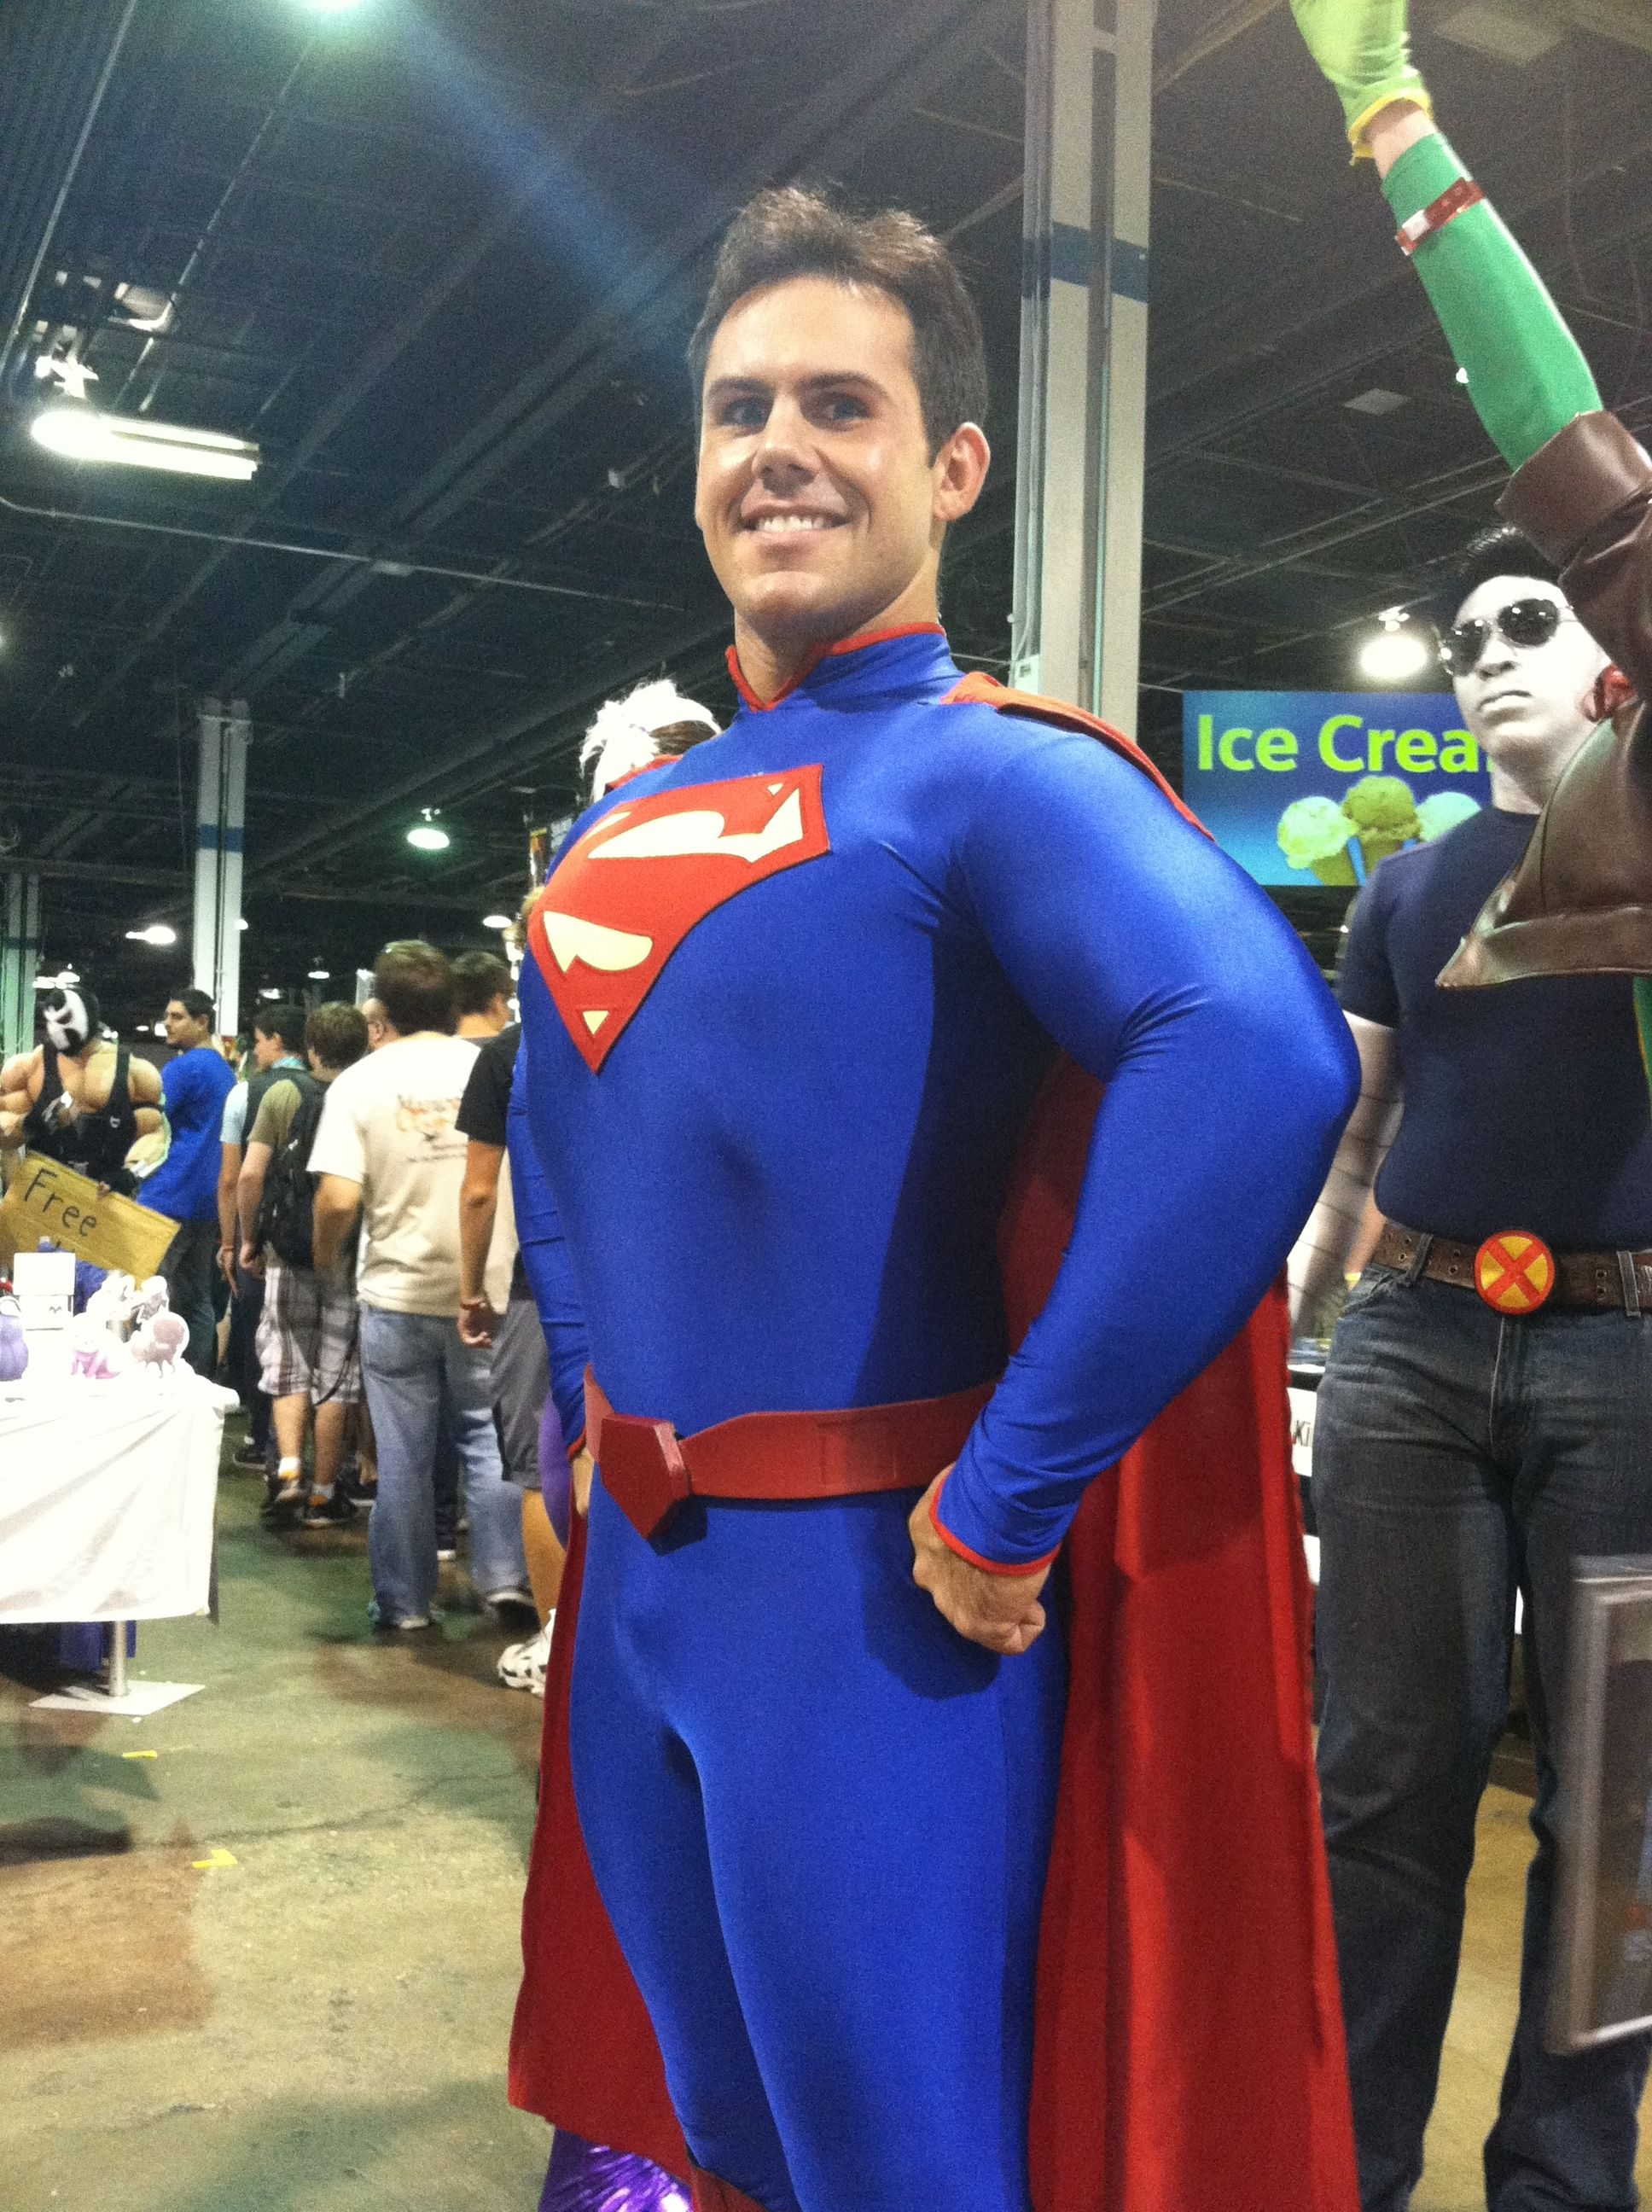 New 52 superman cosplay | DC cosplay | Superman cosplay ...